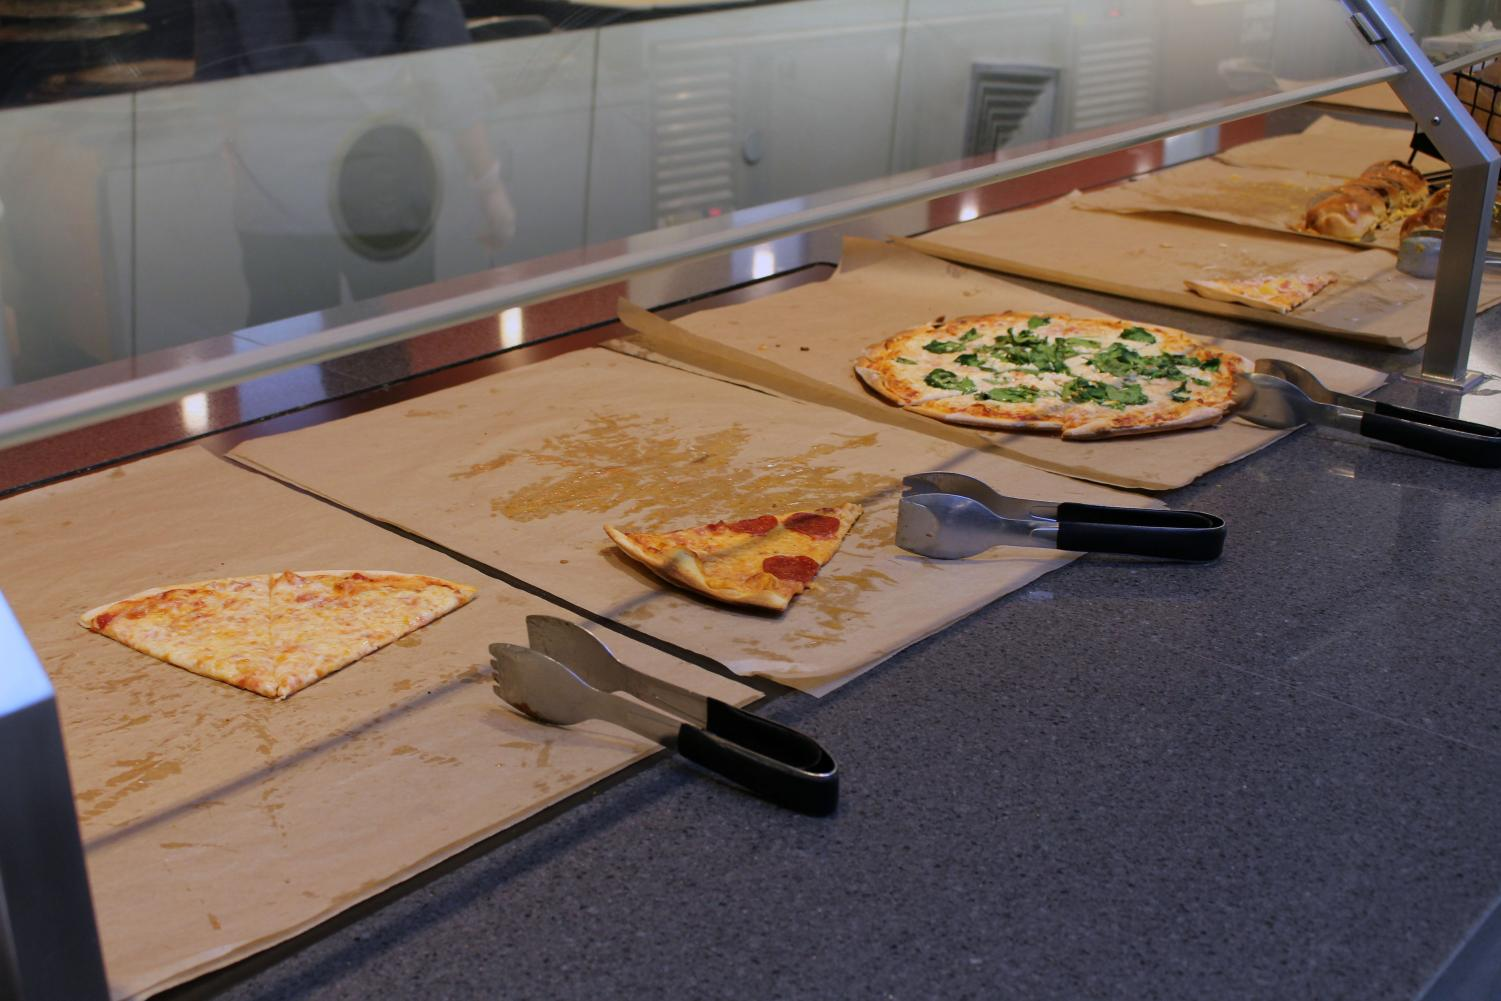 The International Village dining hall offers a wide selection of food, including pizza.